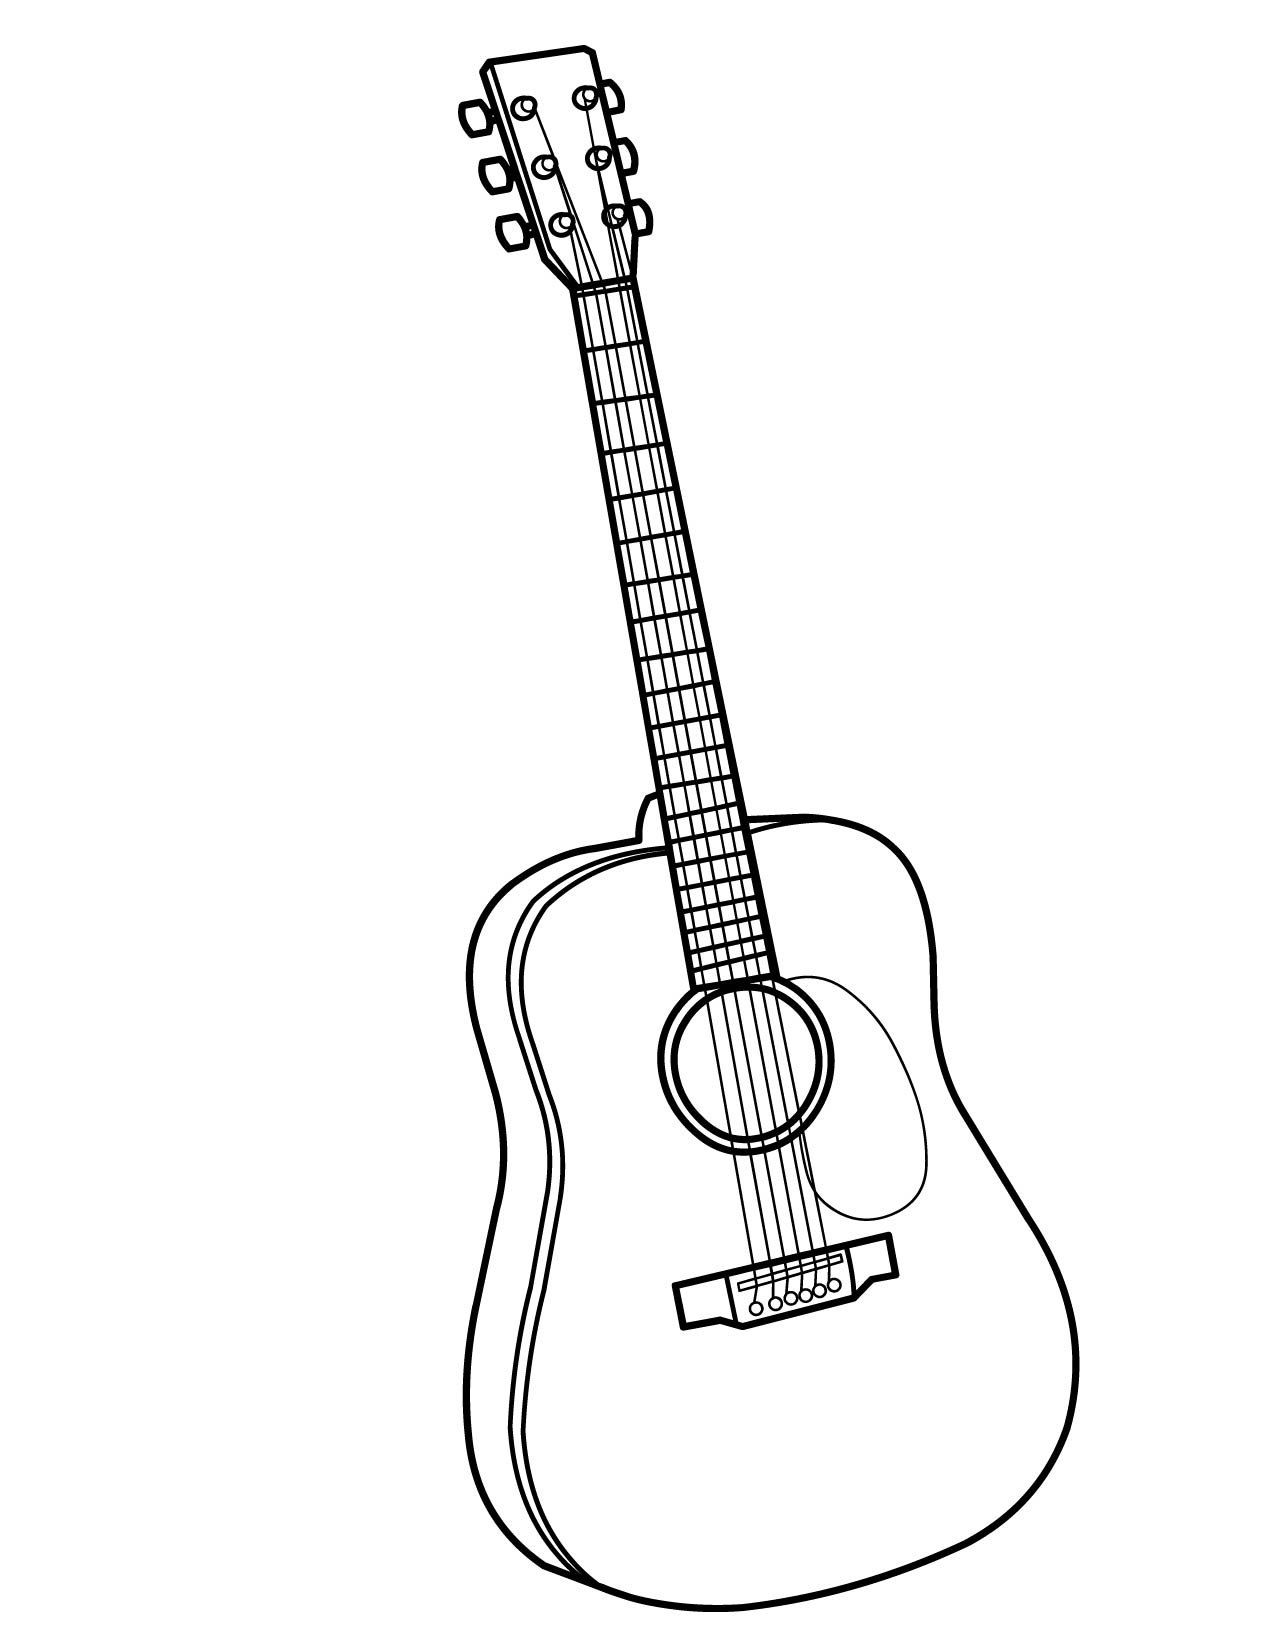 music instrument coloring page - Clip Art Library | 1650x1275